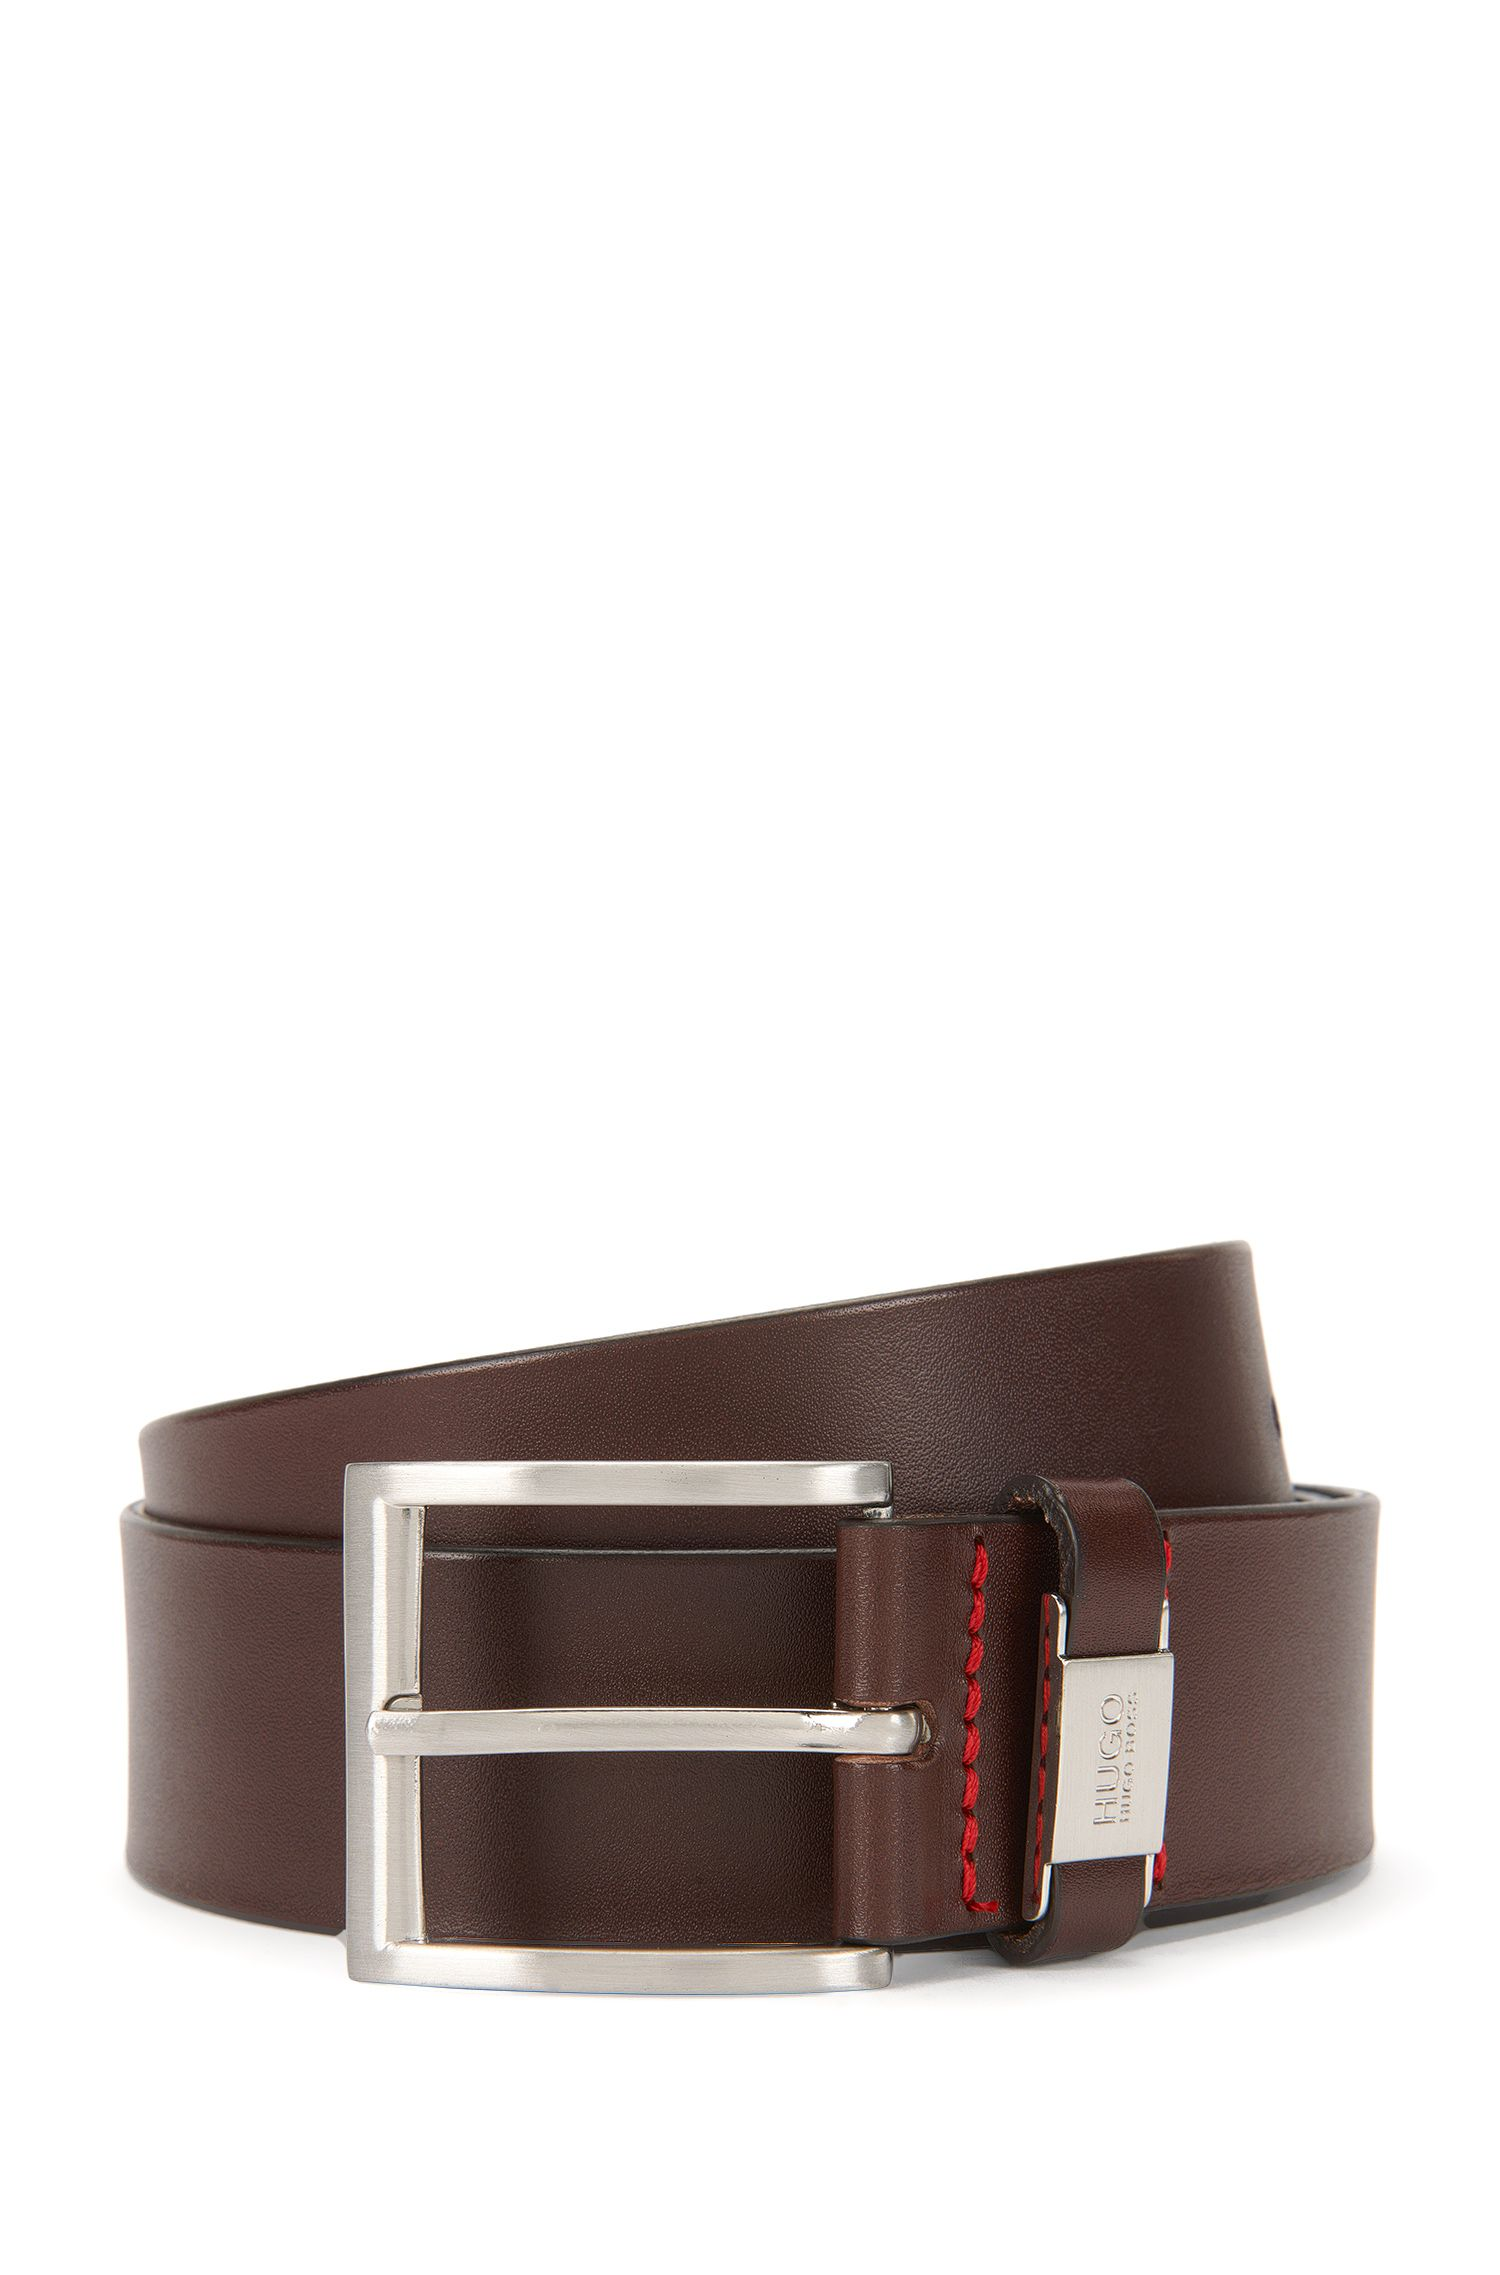 Leather belt with branded loop